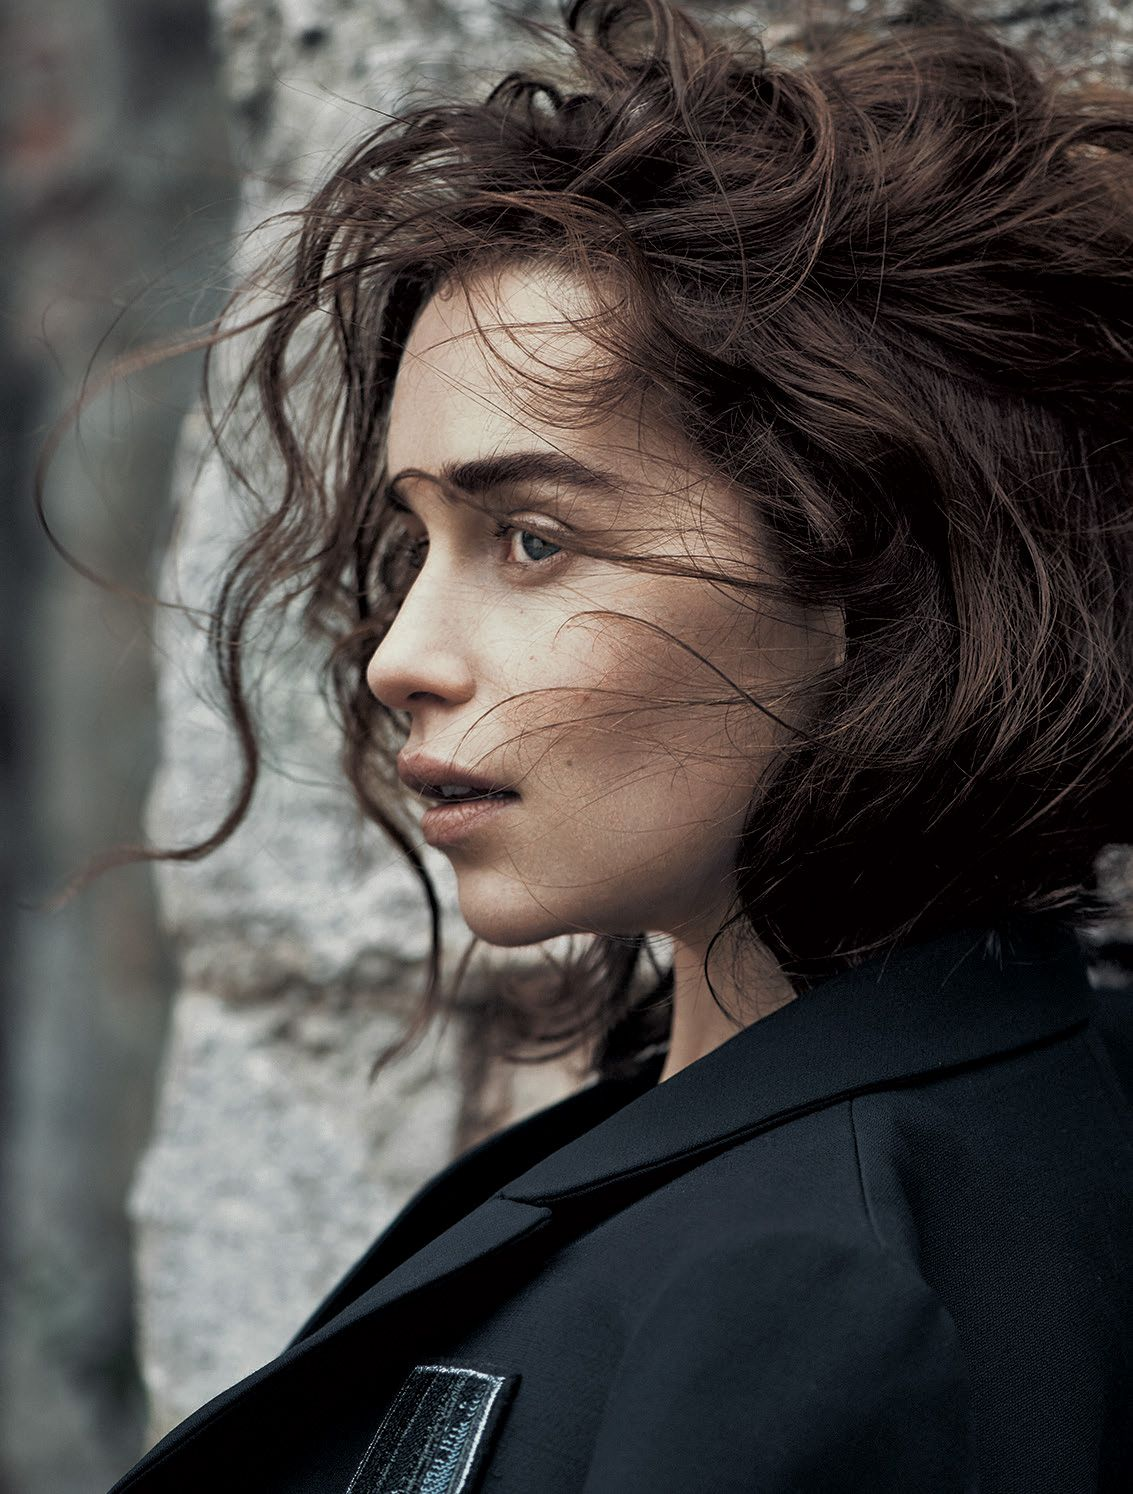 Windblown [HQ] #emiliaclarke